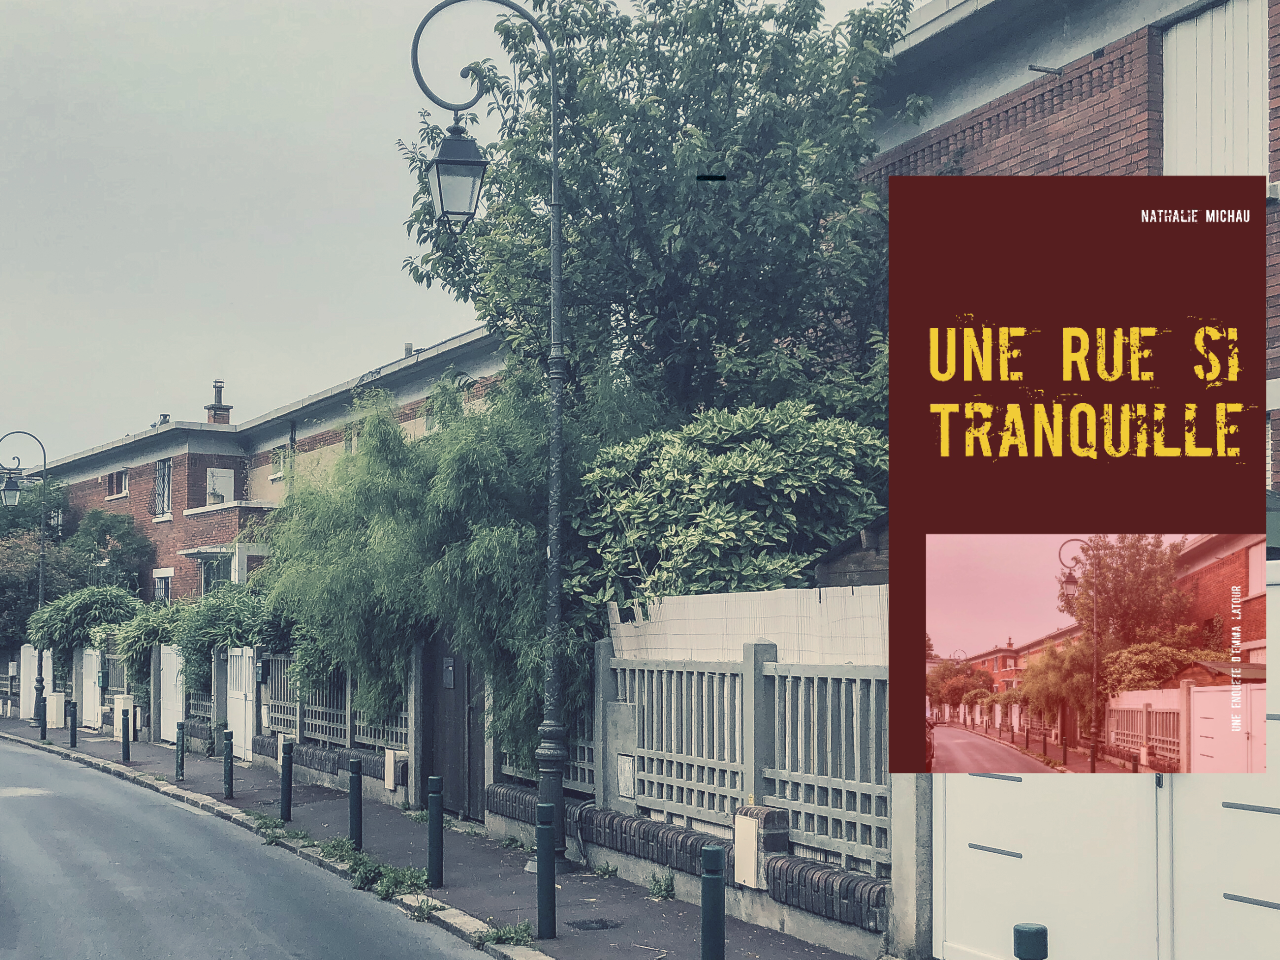 UNE RUE SI TRANQUILLE